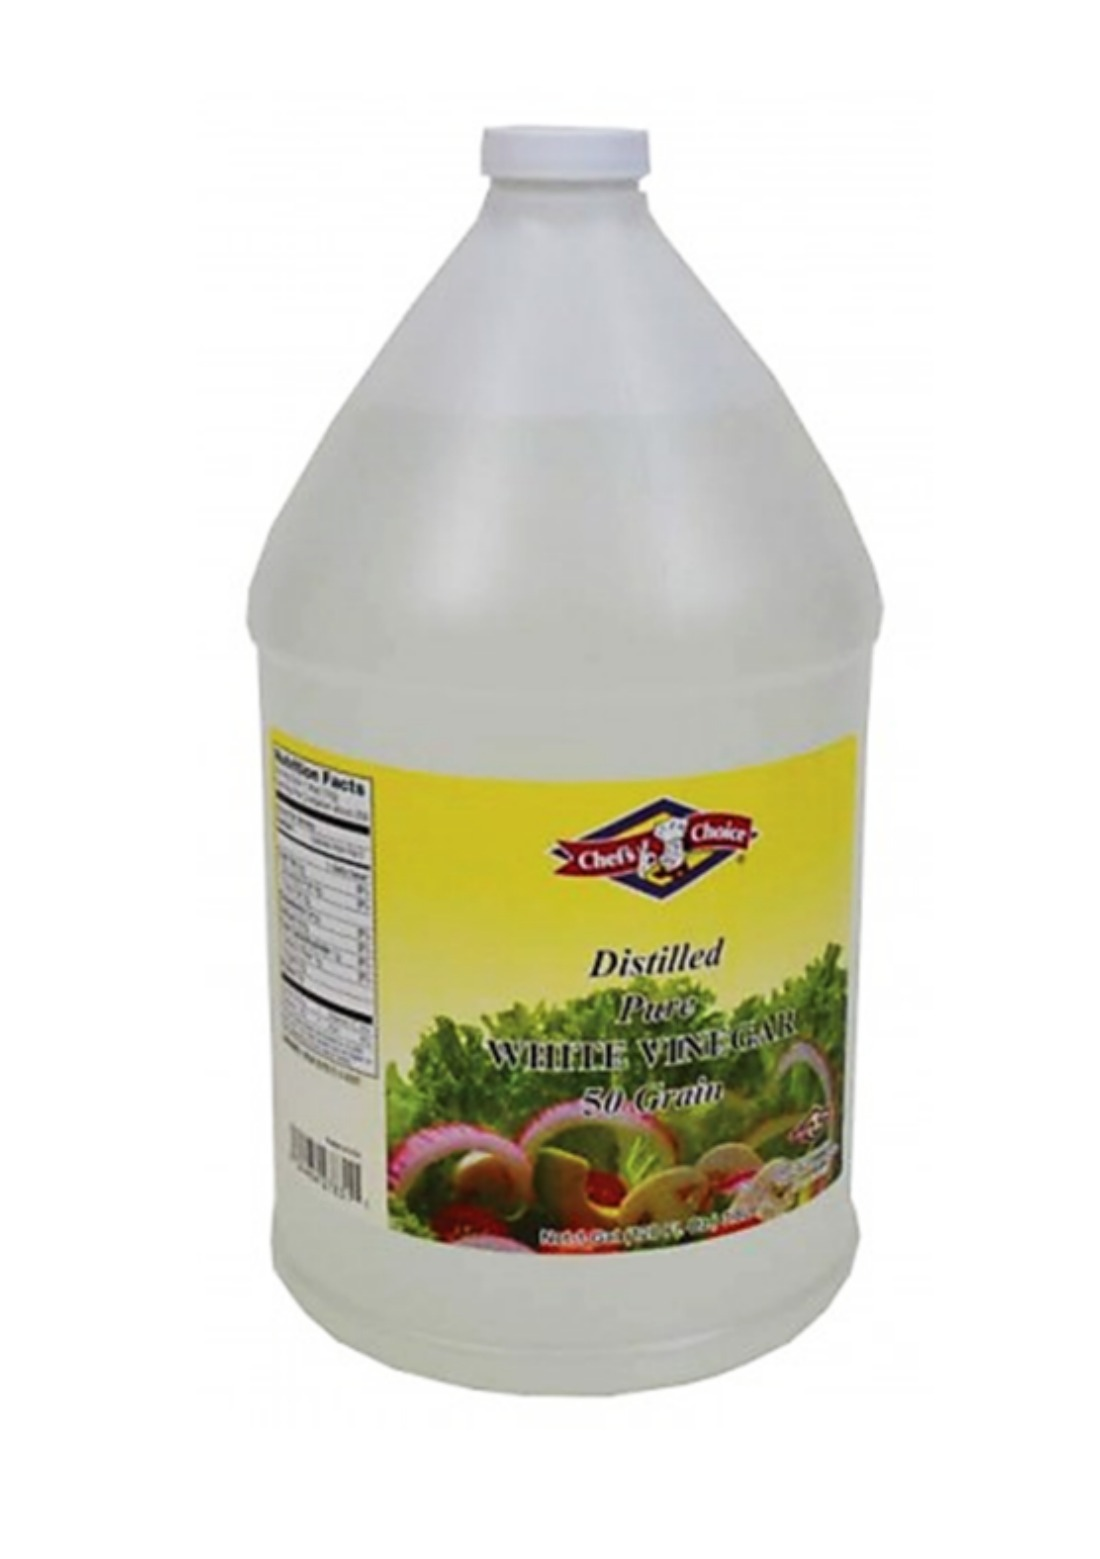 Chef Choice White Vinegar  50gr 1 Gal